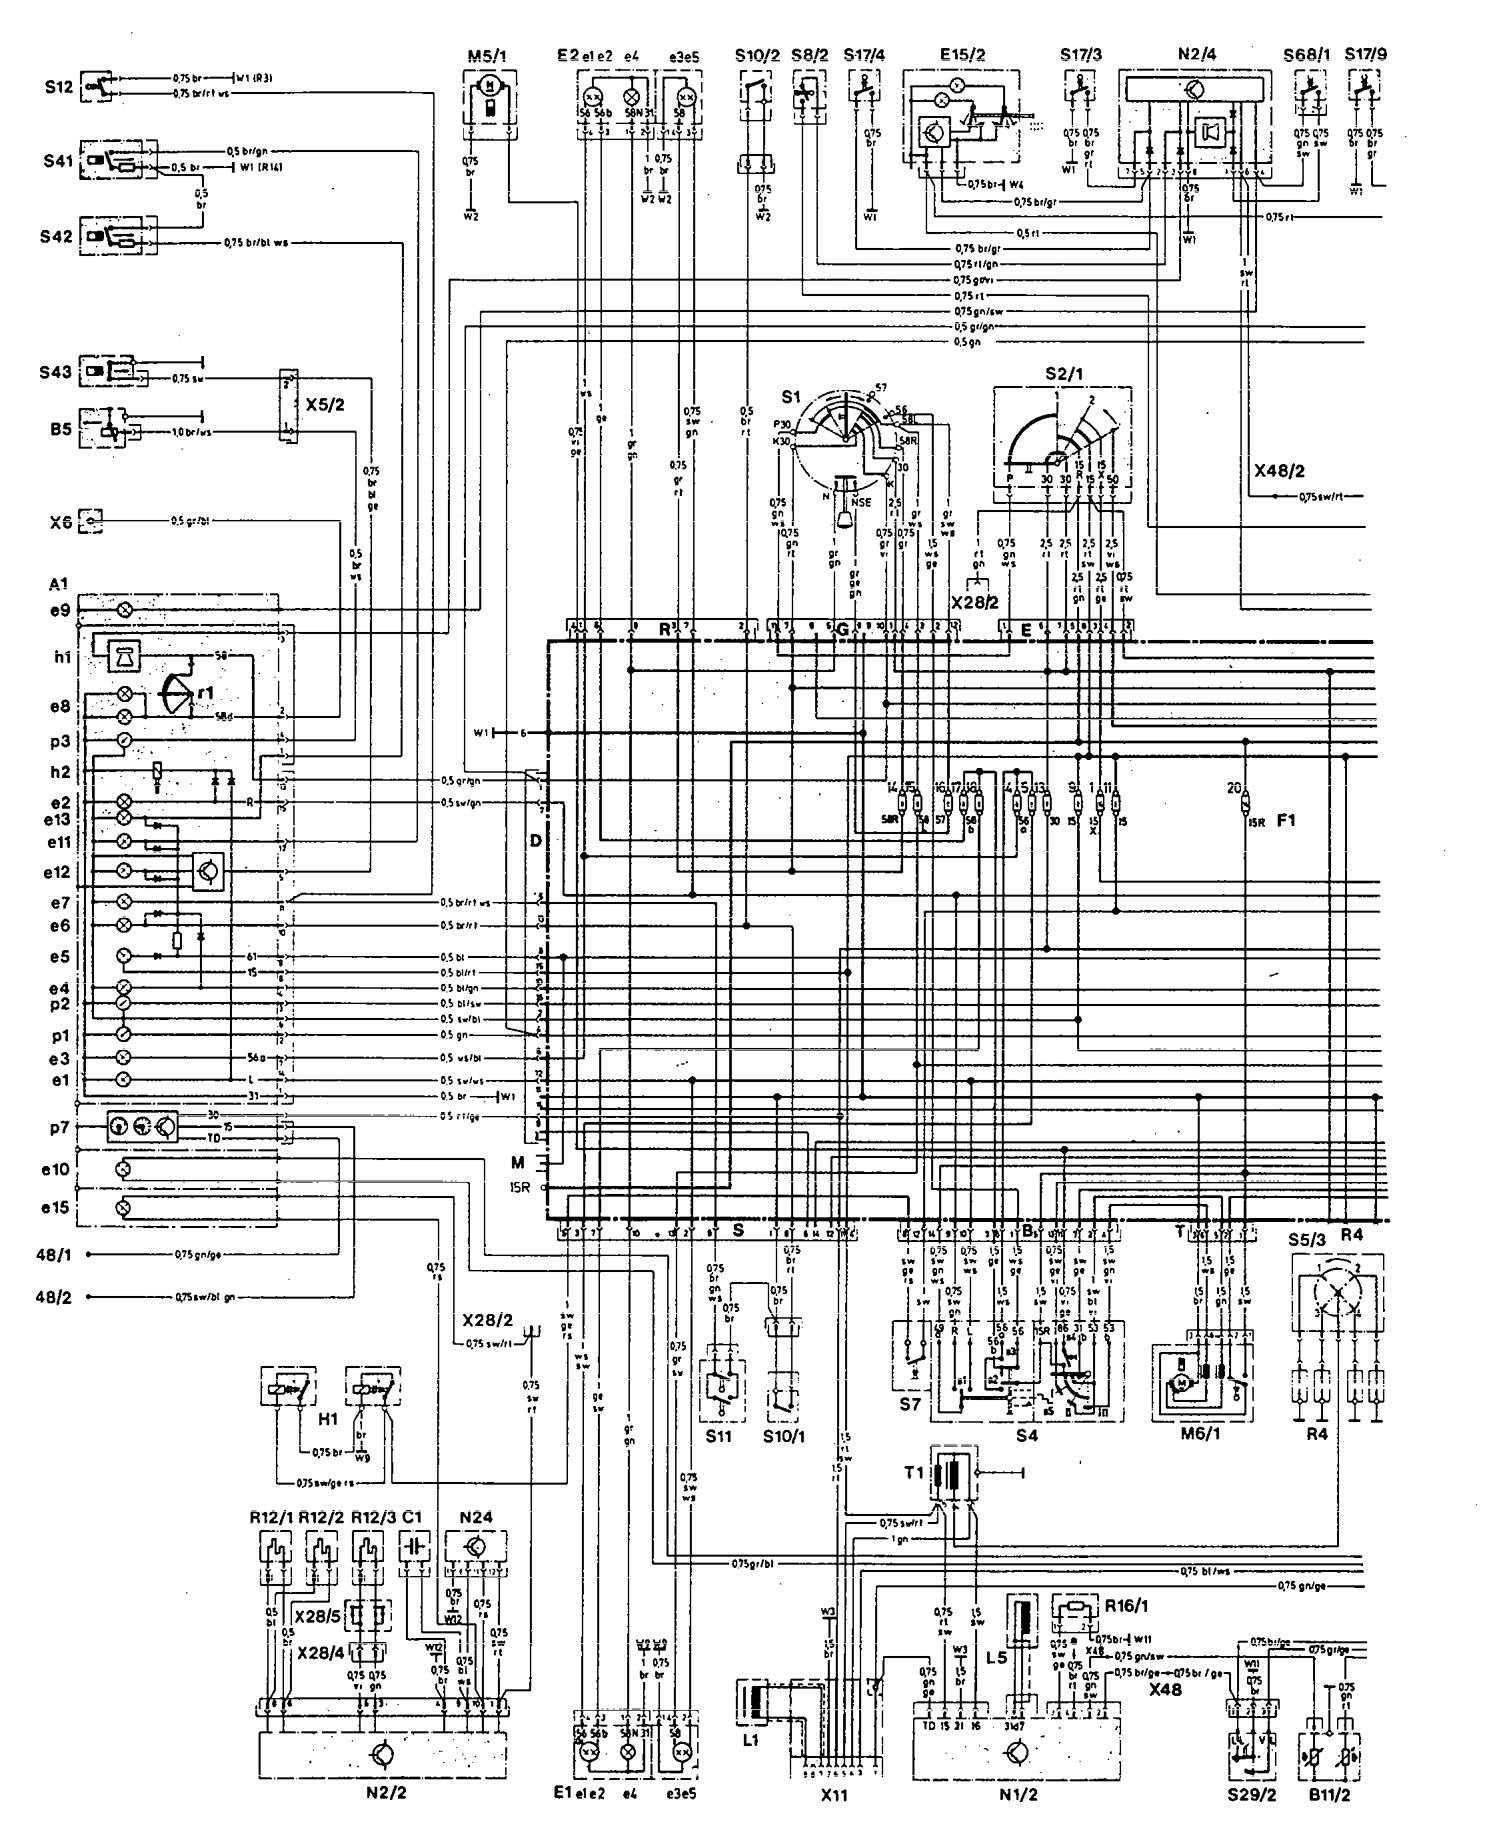 Mercedes Benz 190e 1992 Wiring Diagrams Exterior Lighting Carknowledge